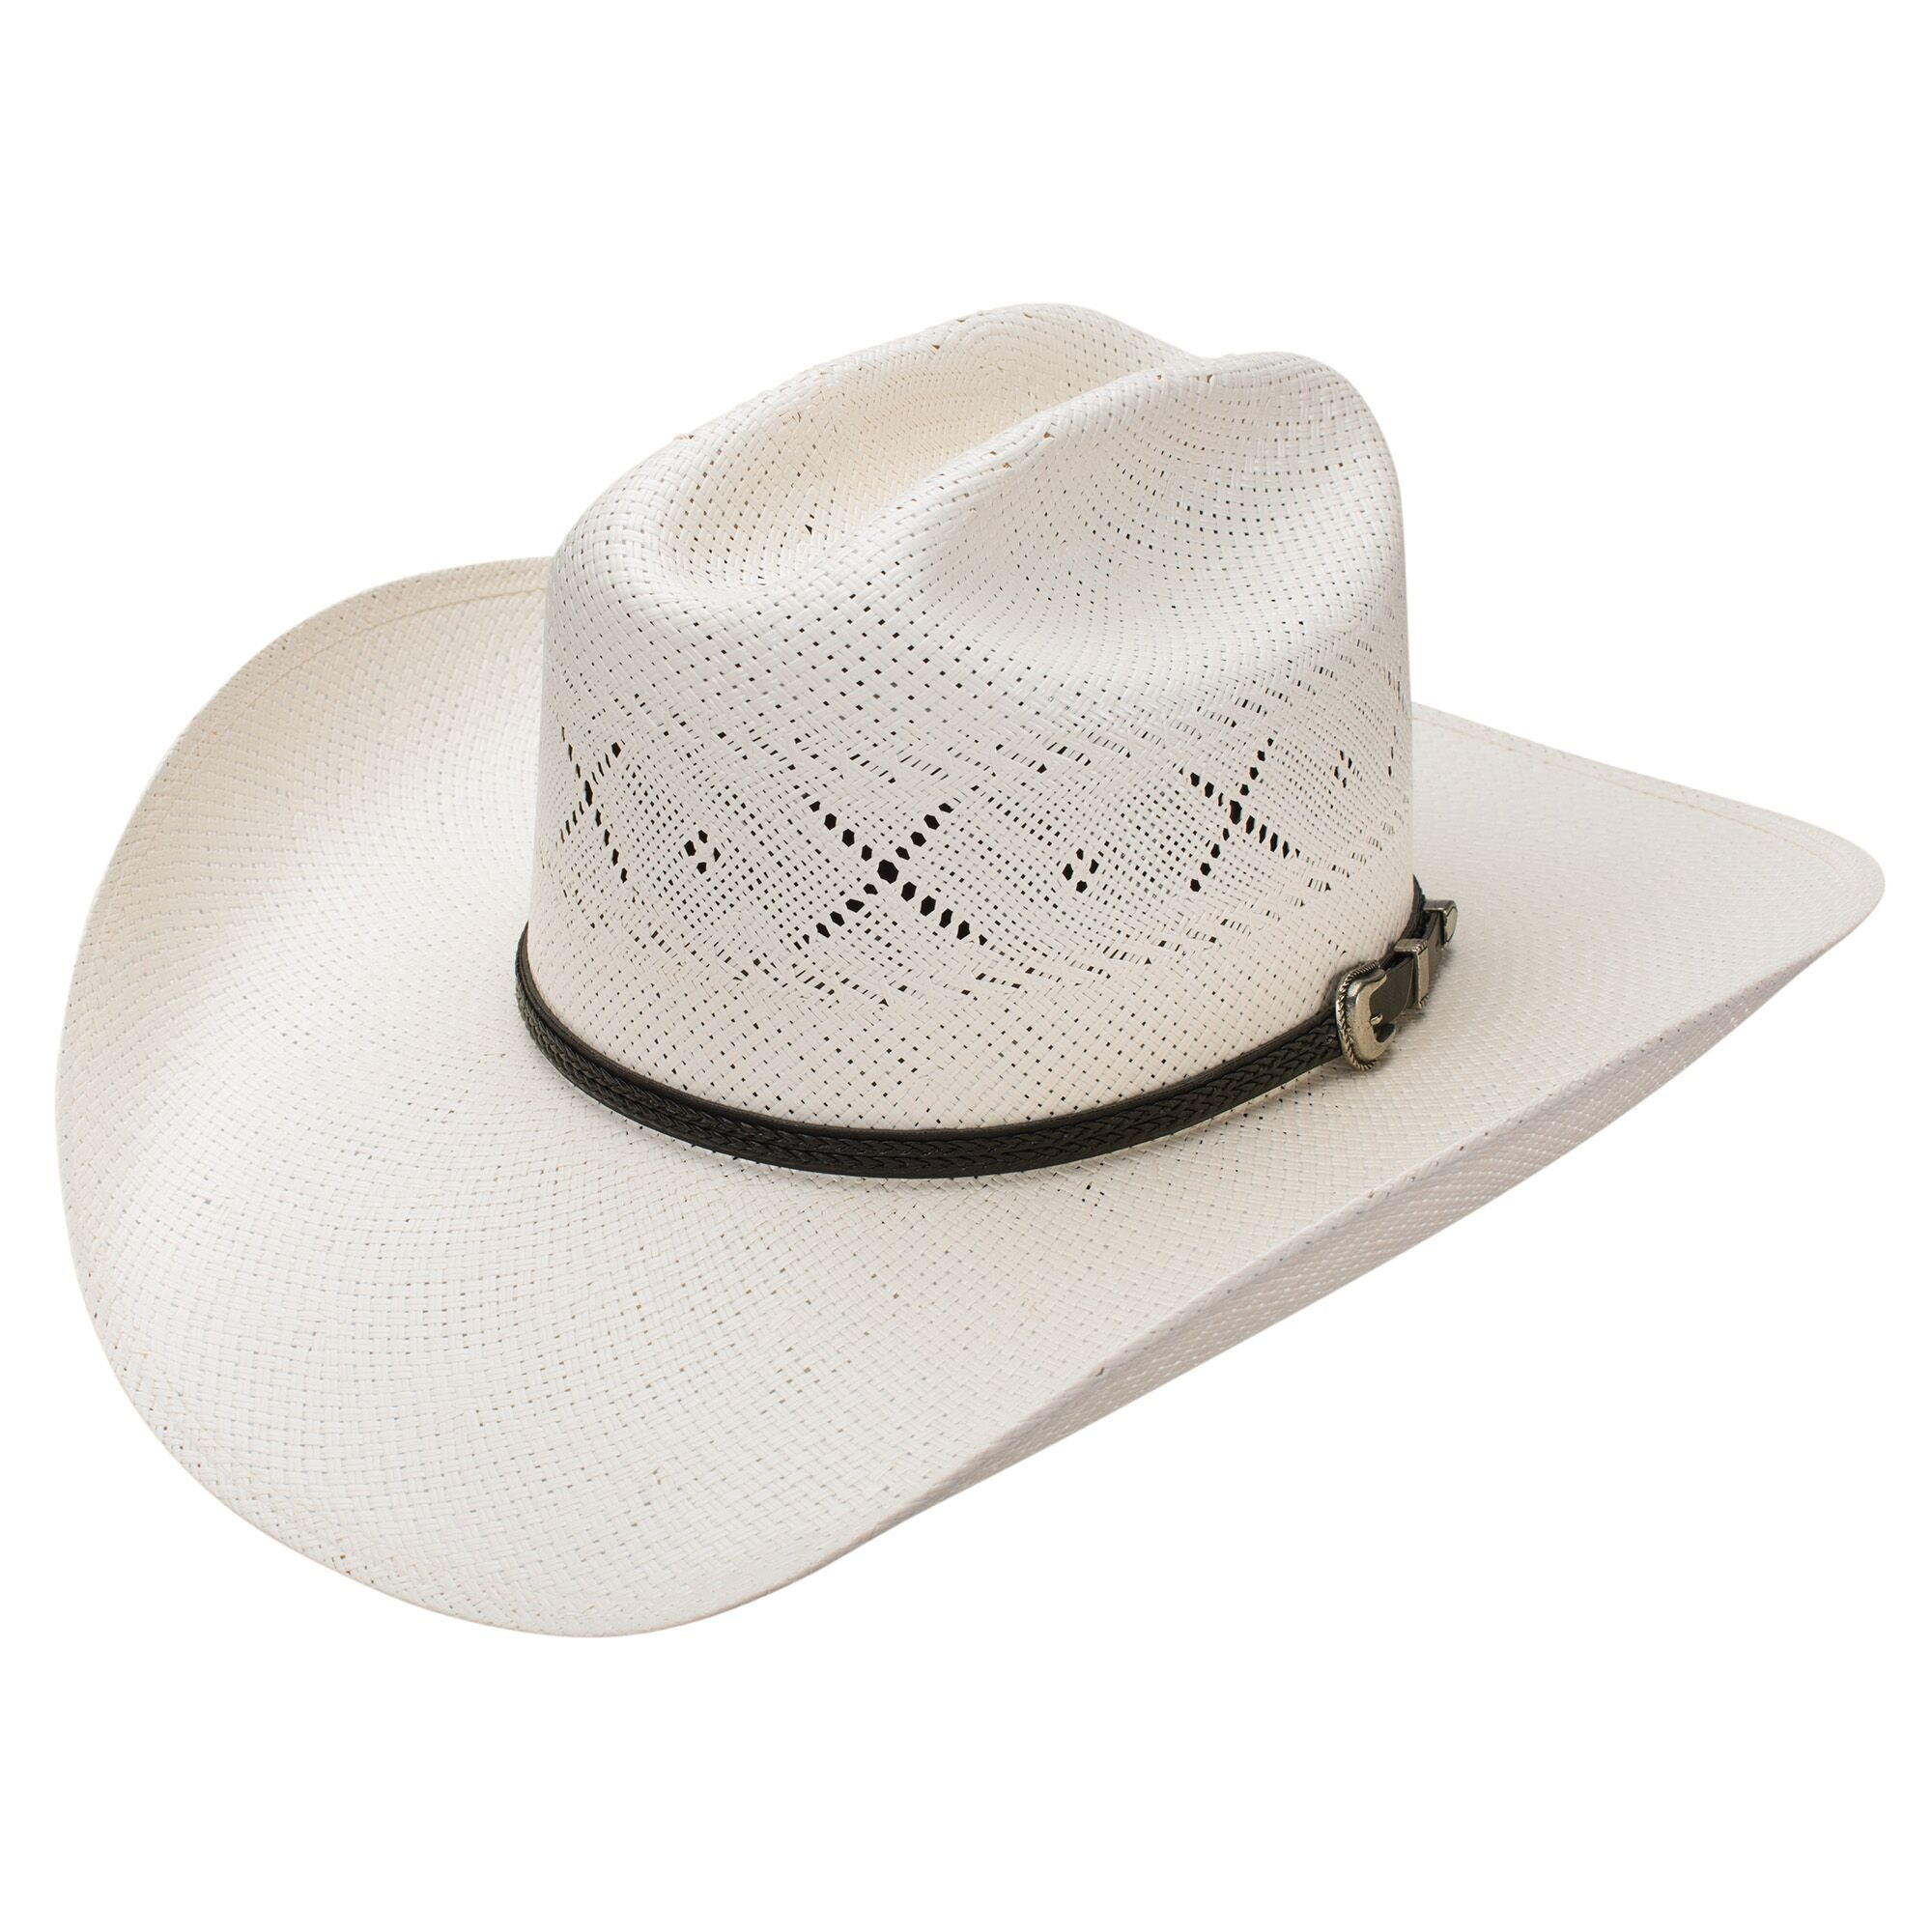 Resistol All My Ex's 20X Straw Hat #RSALMX-304281